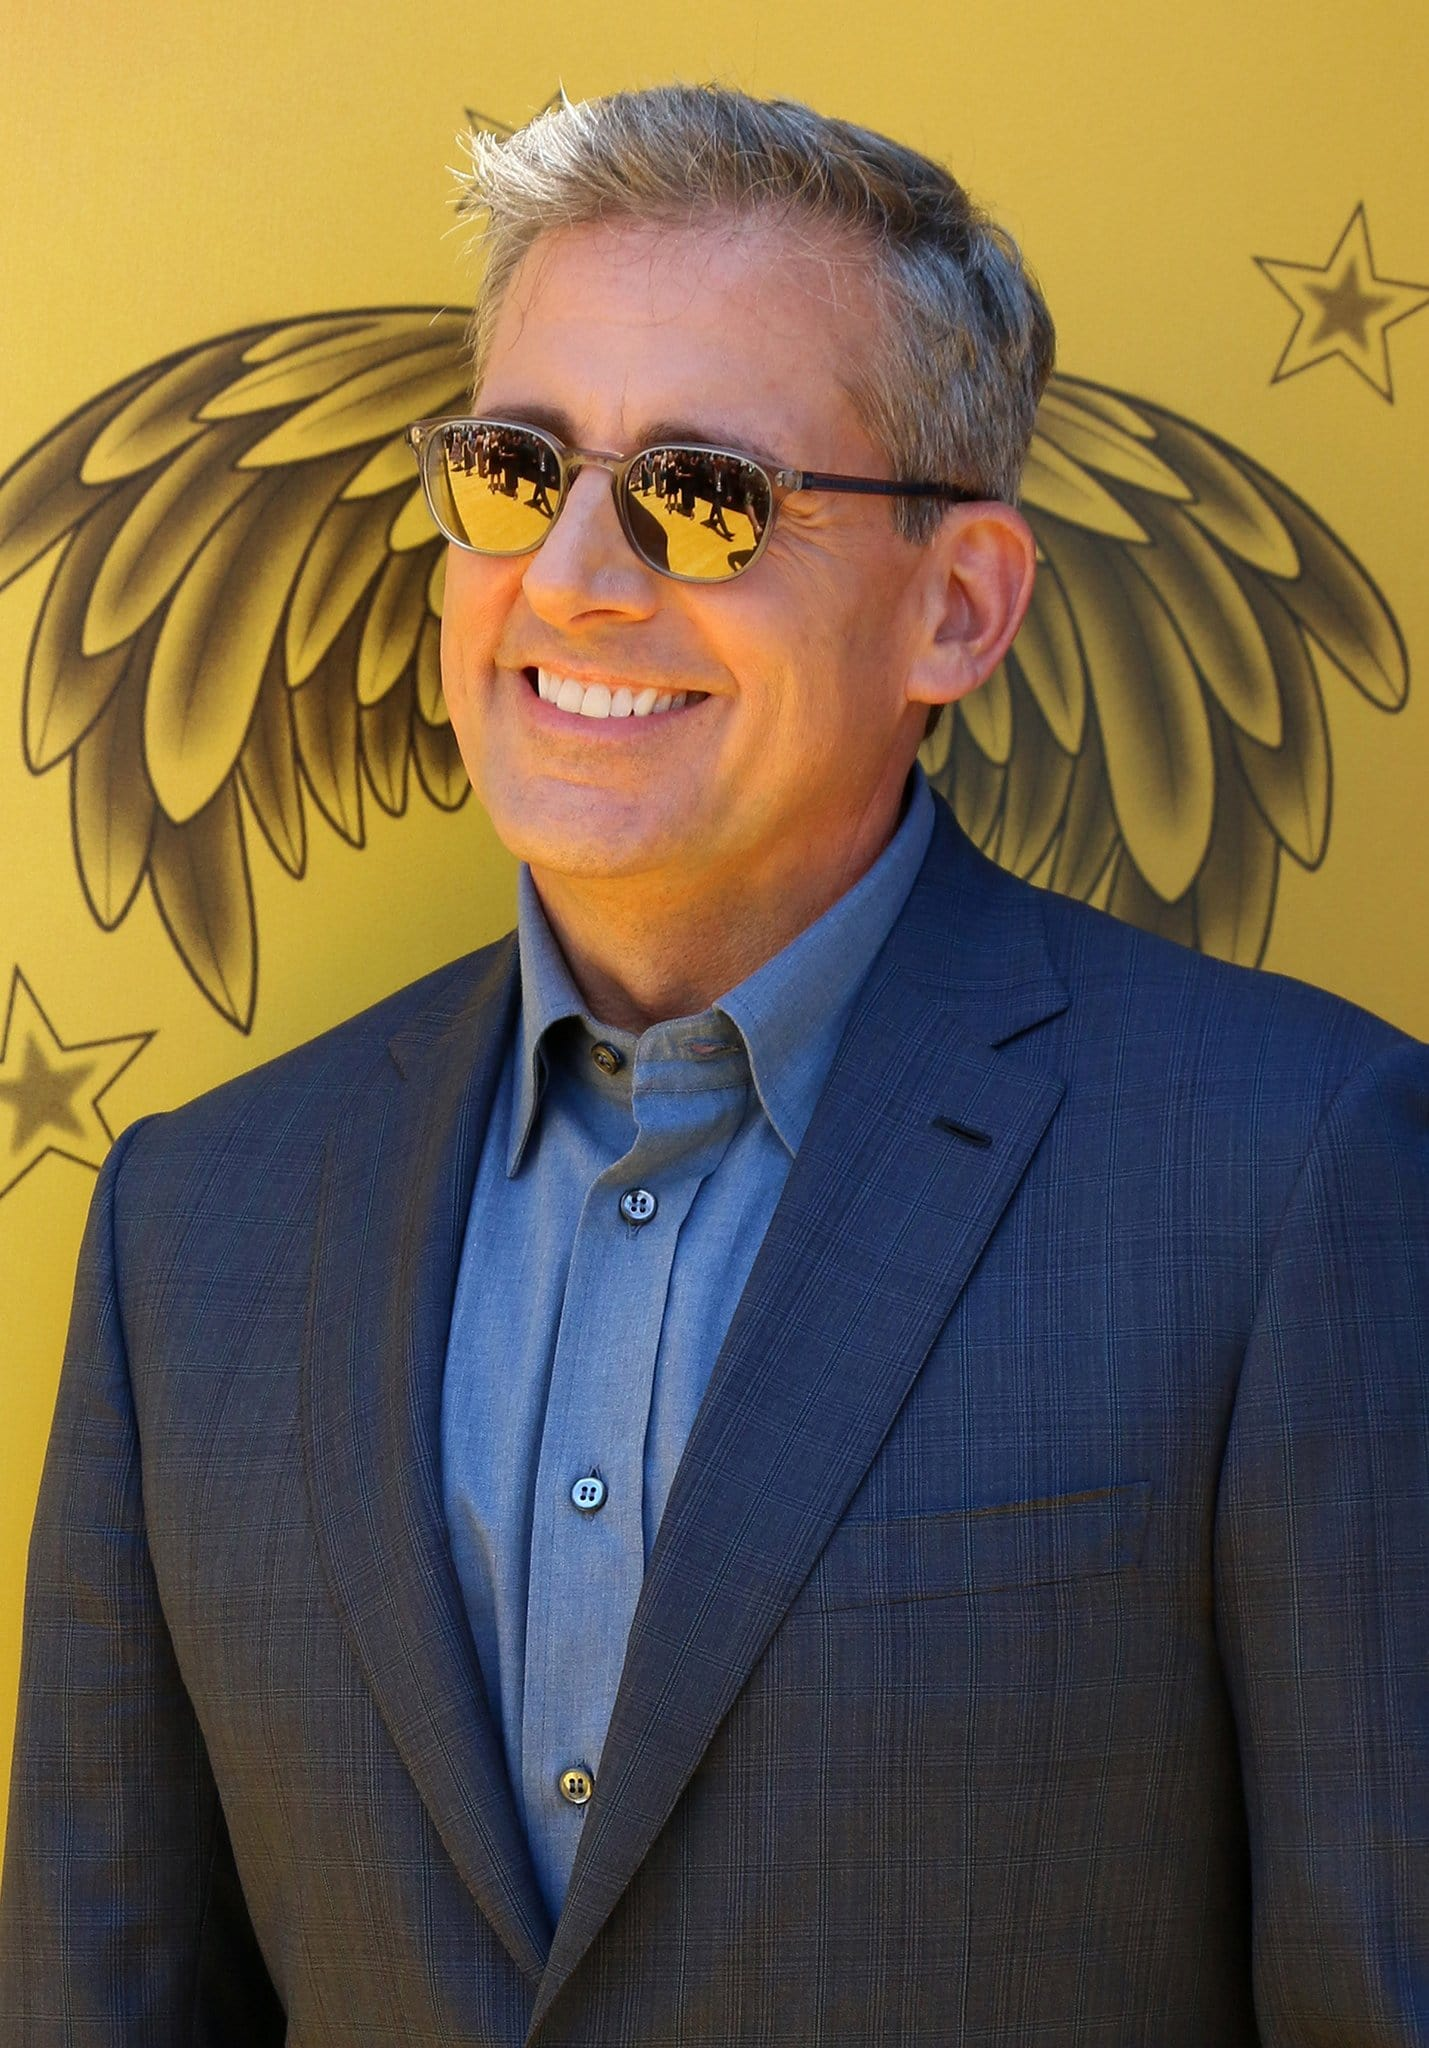 Steve Carell voiced Gru in the Universal CGI film Despicable Me franchise